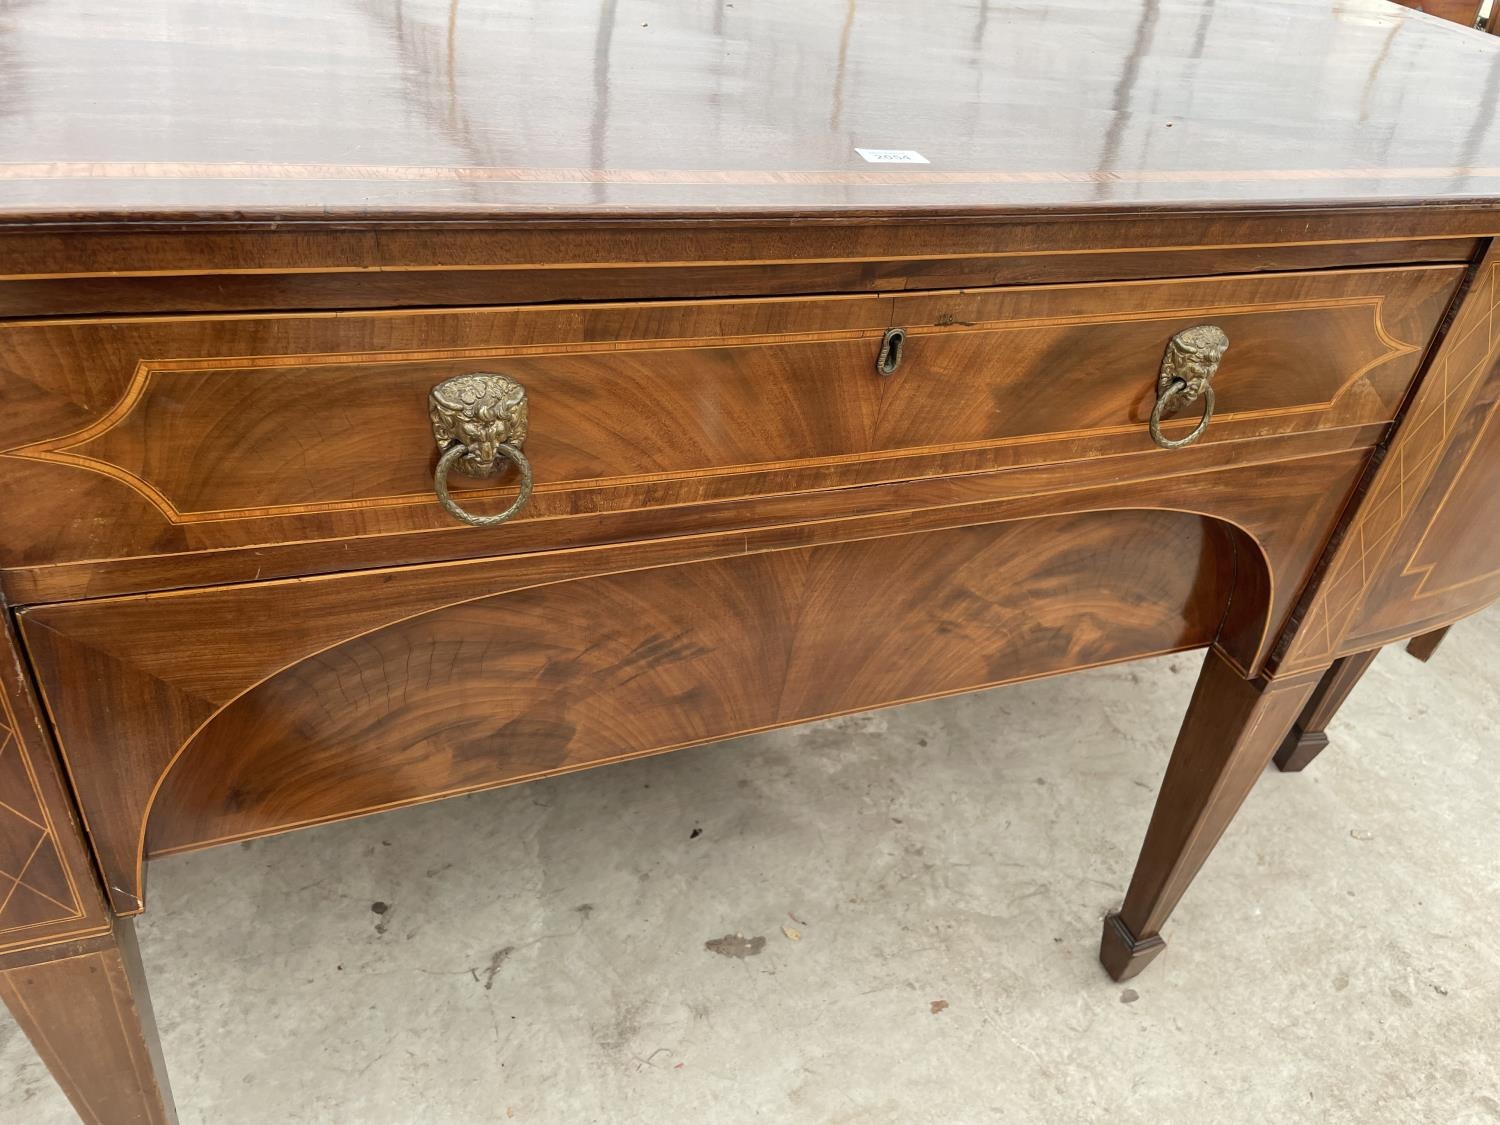 """A 19TH CENTURY MAHOGANY BOWFRONTED SIDEBOARD ON TAPERED LEGS, WITH SPADE FEET, 78"""" - Image 7 of 10"""